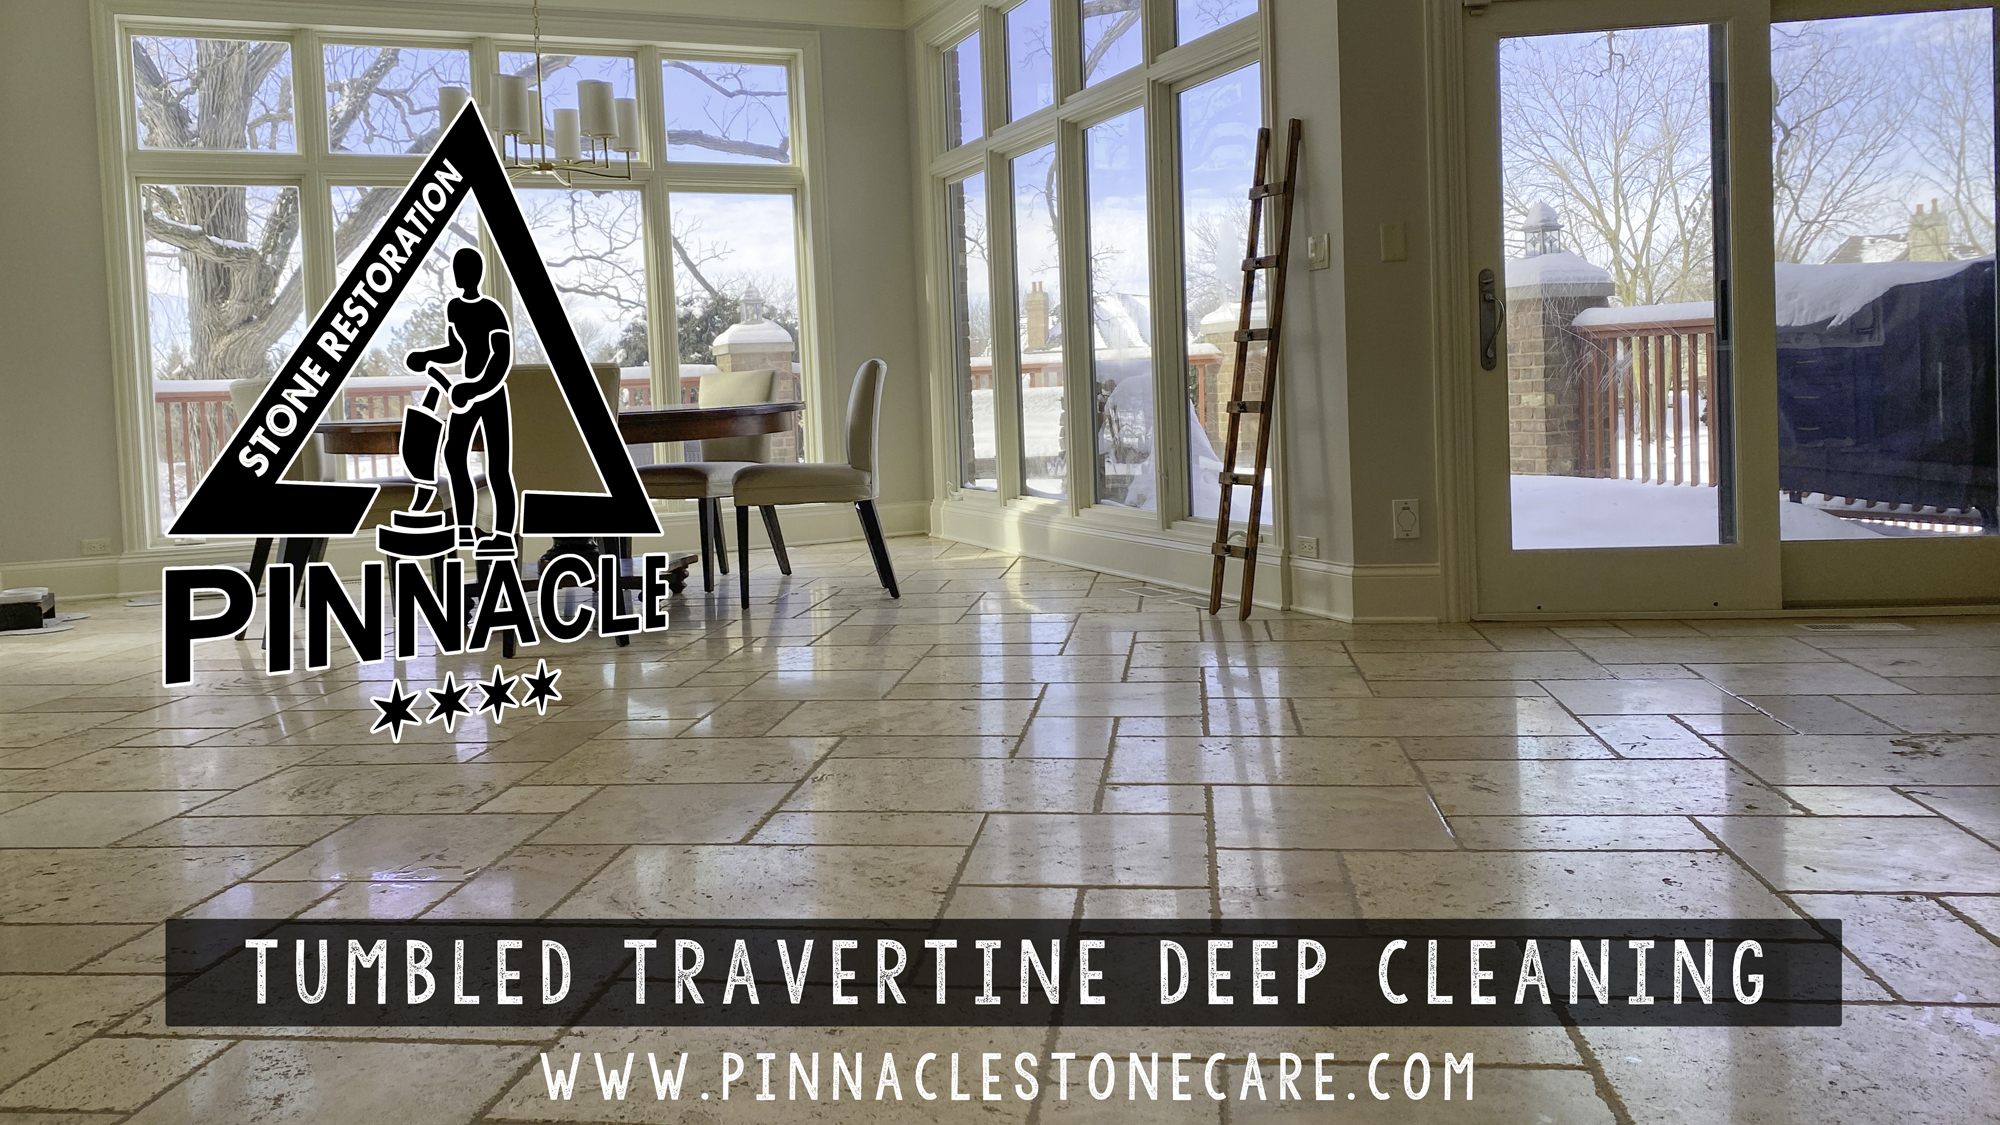 TUMBLED TRAVERTINE DEEP CLEANING AND REFINISHING